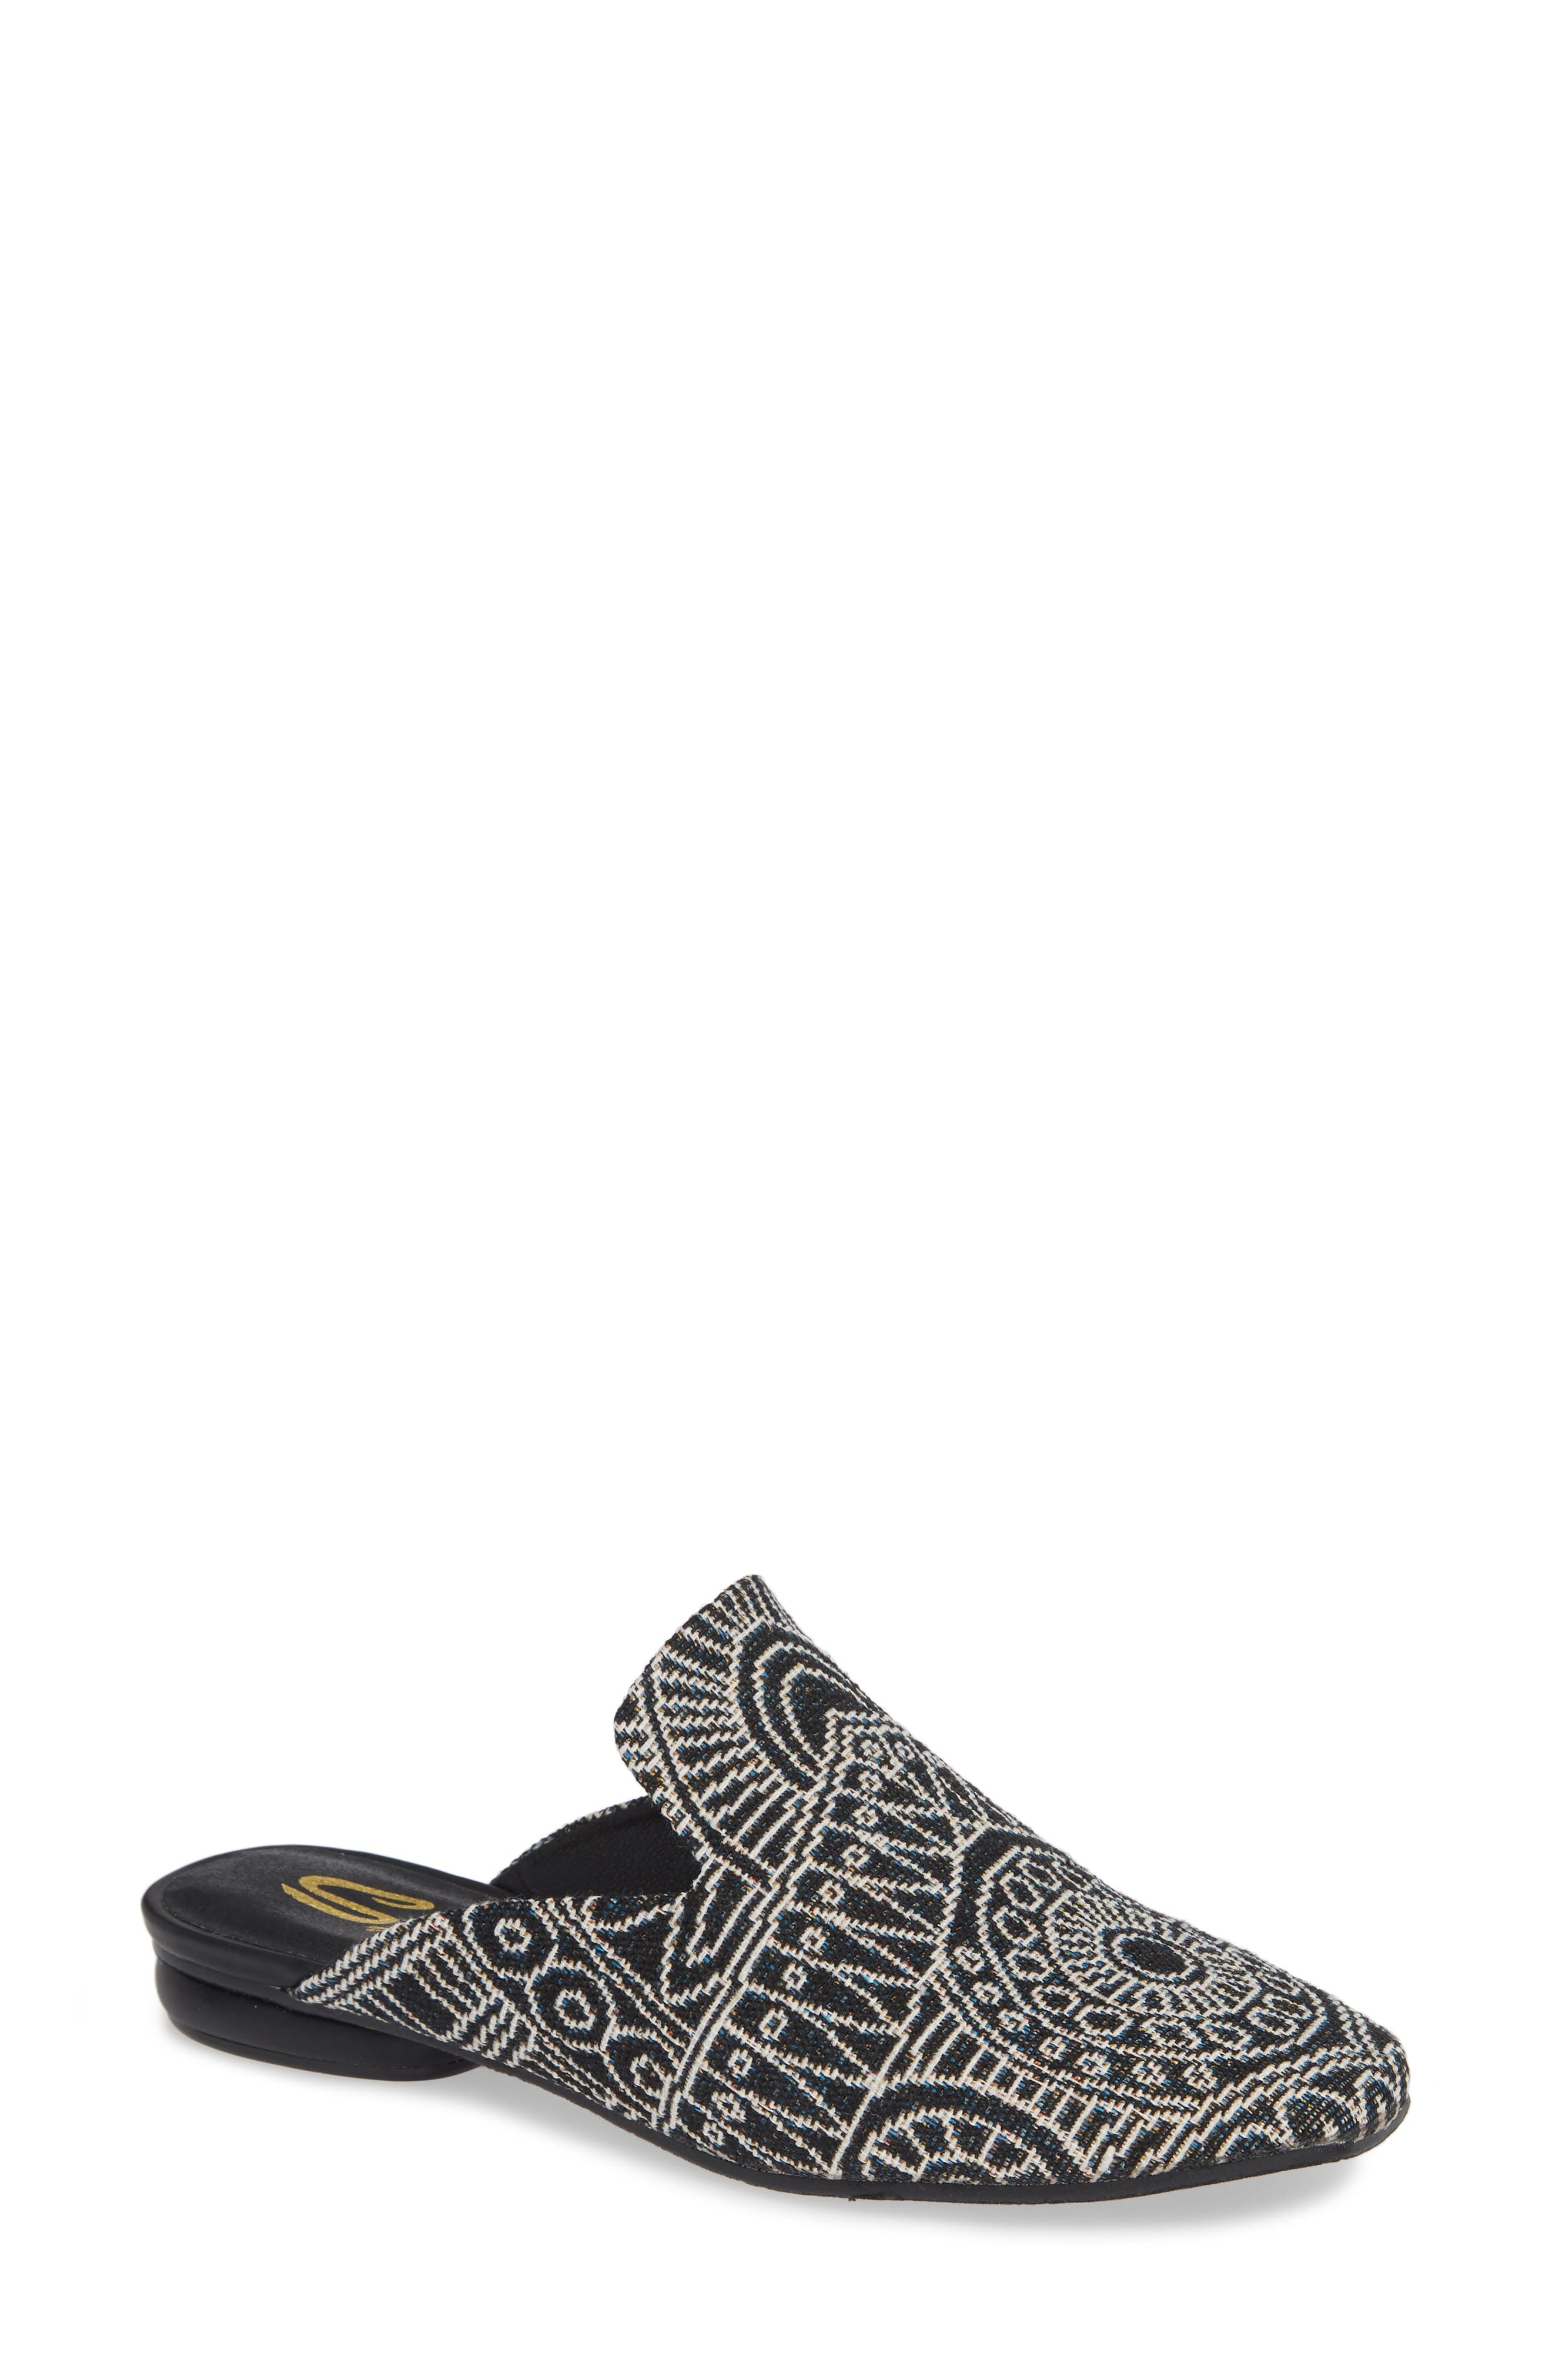 Brienne Loafer Mule,                             Main thumbnail 1, color,                             BLACK/ WHITE FABRIC